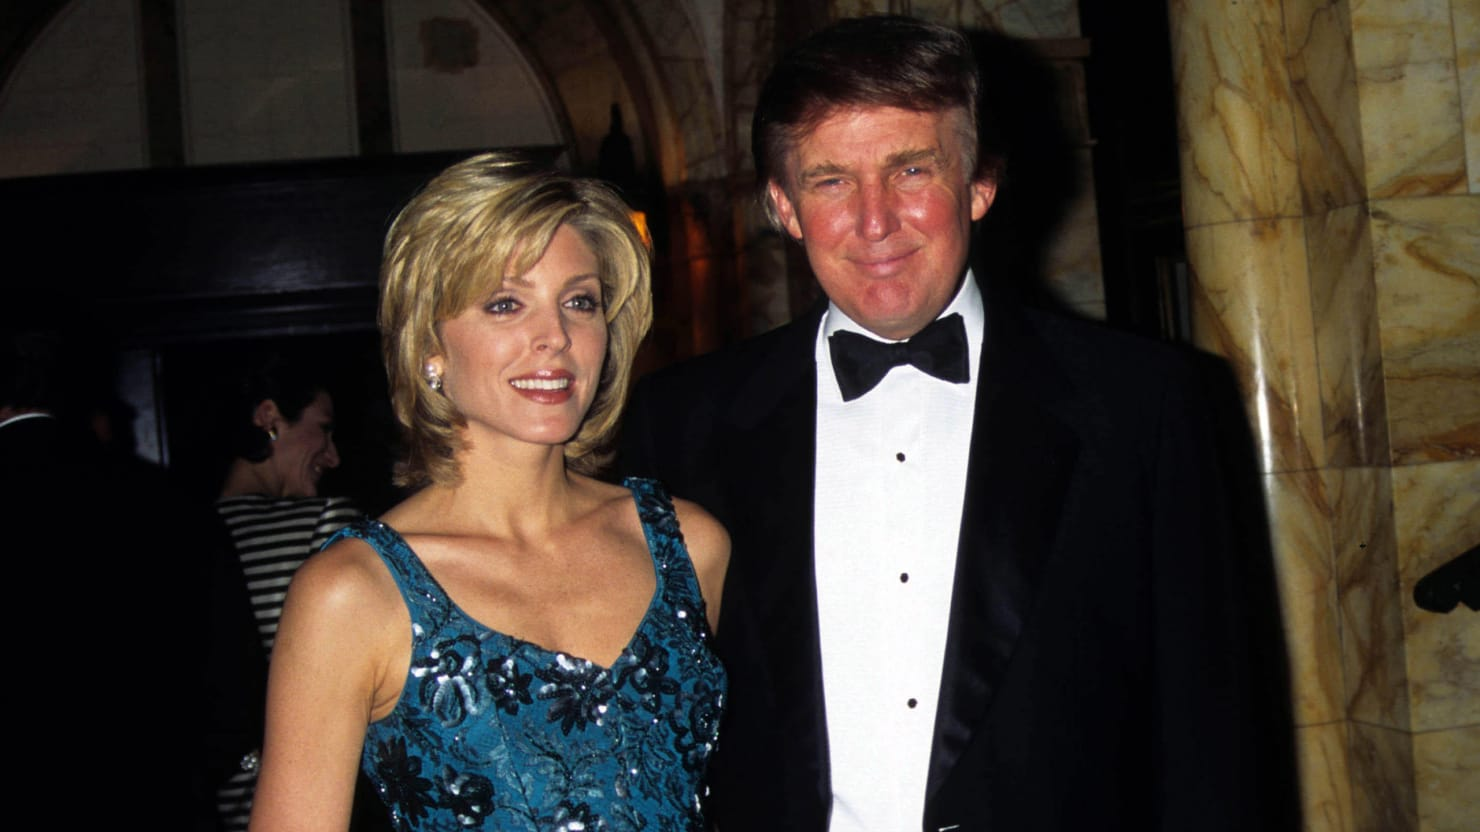 Donald Trump Made Out With Marla Maples As She Delivered